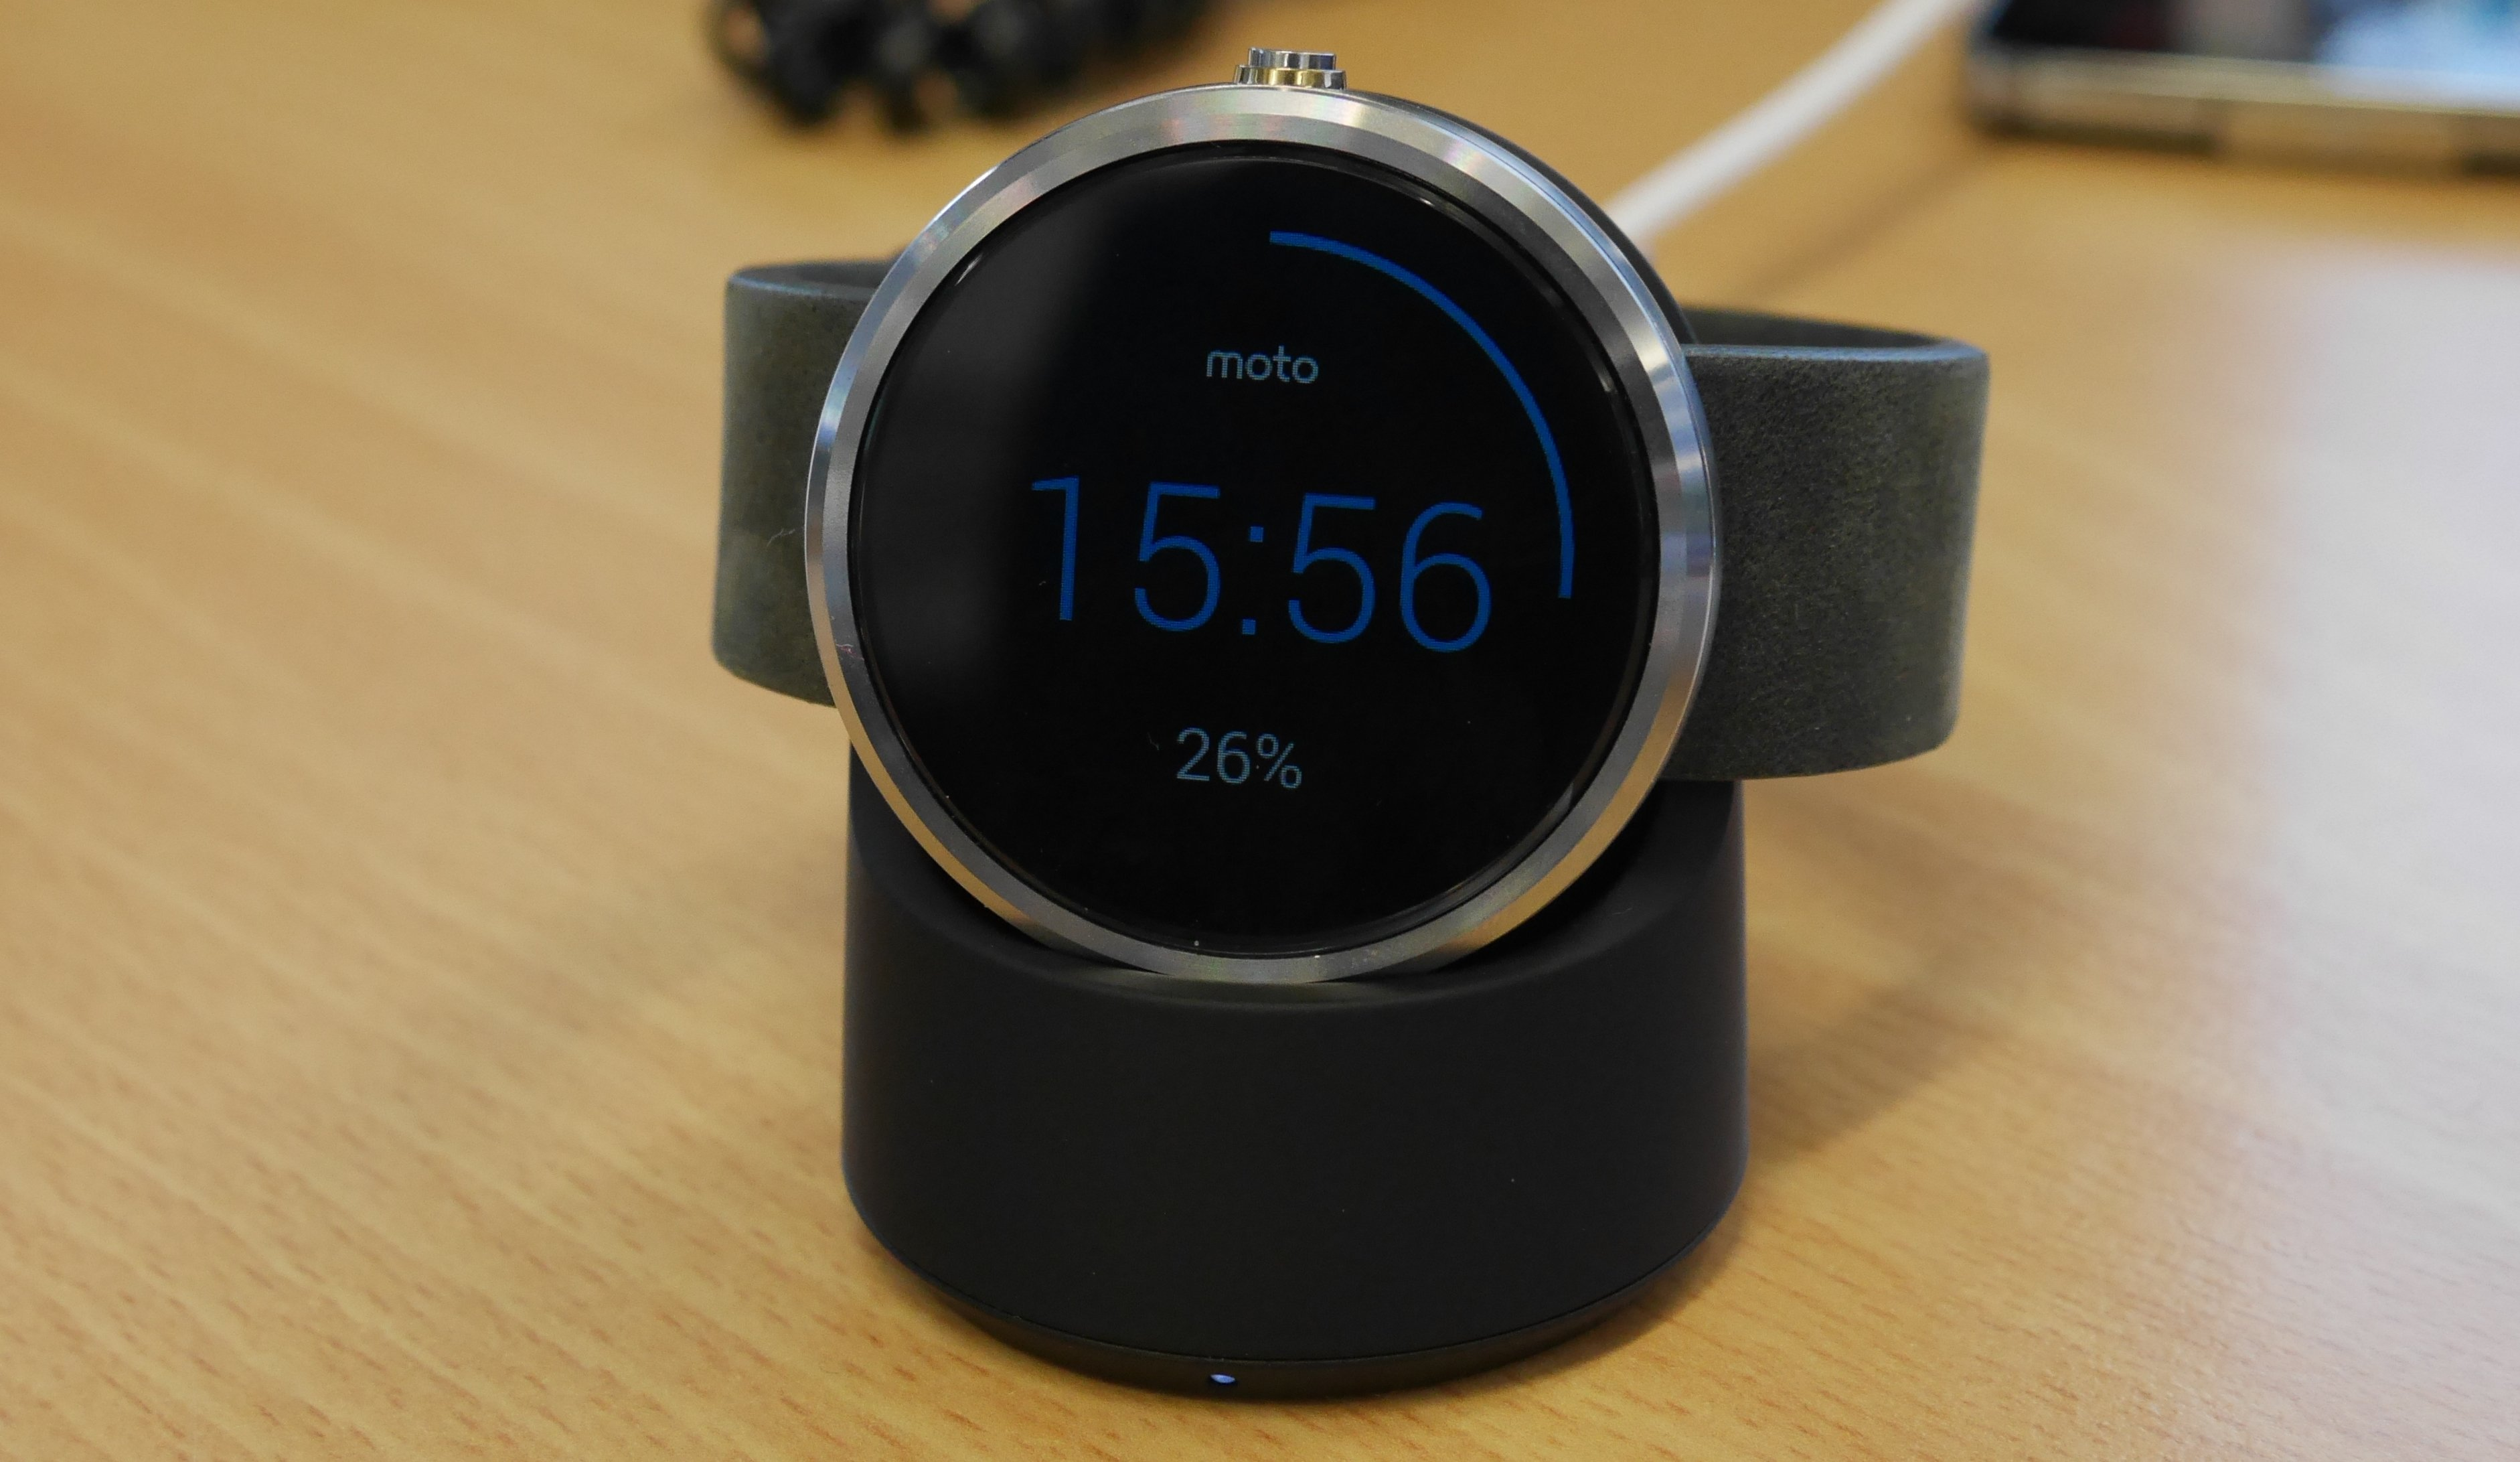 moto android watch. moto 360 hardware android watch